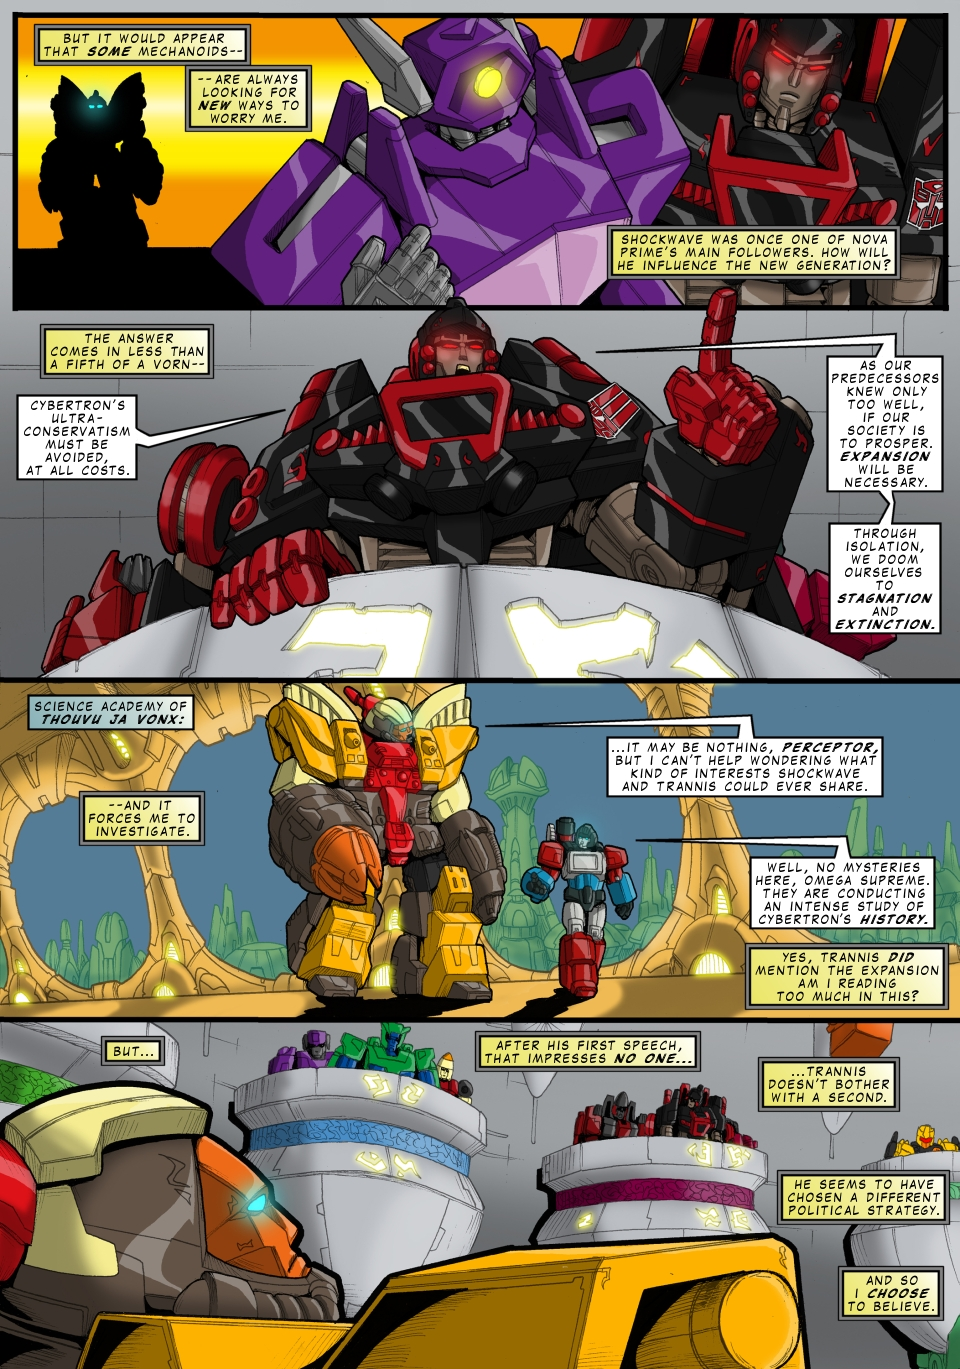 01 Omega Supreme - page 15 by Tf-SeedsOfDeception